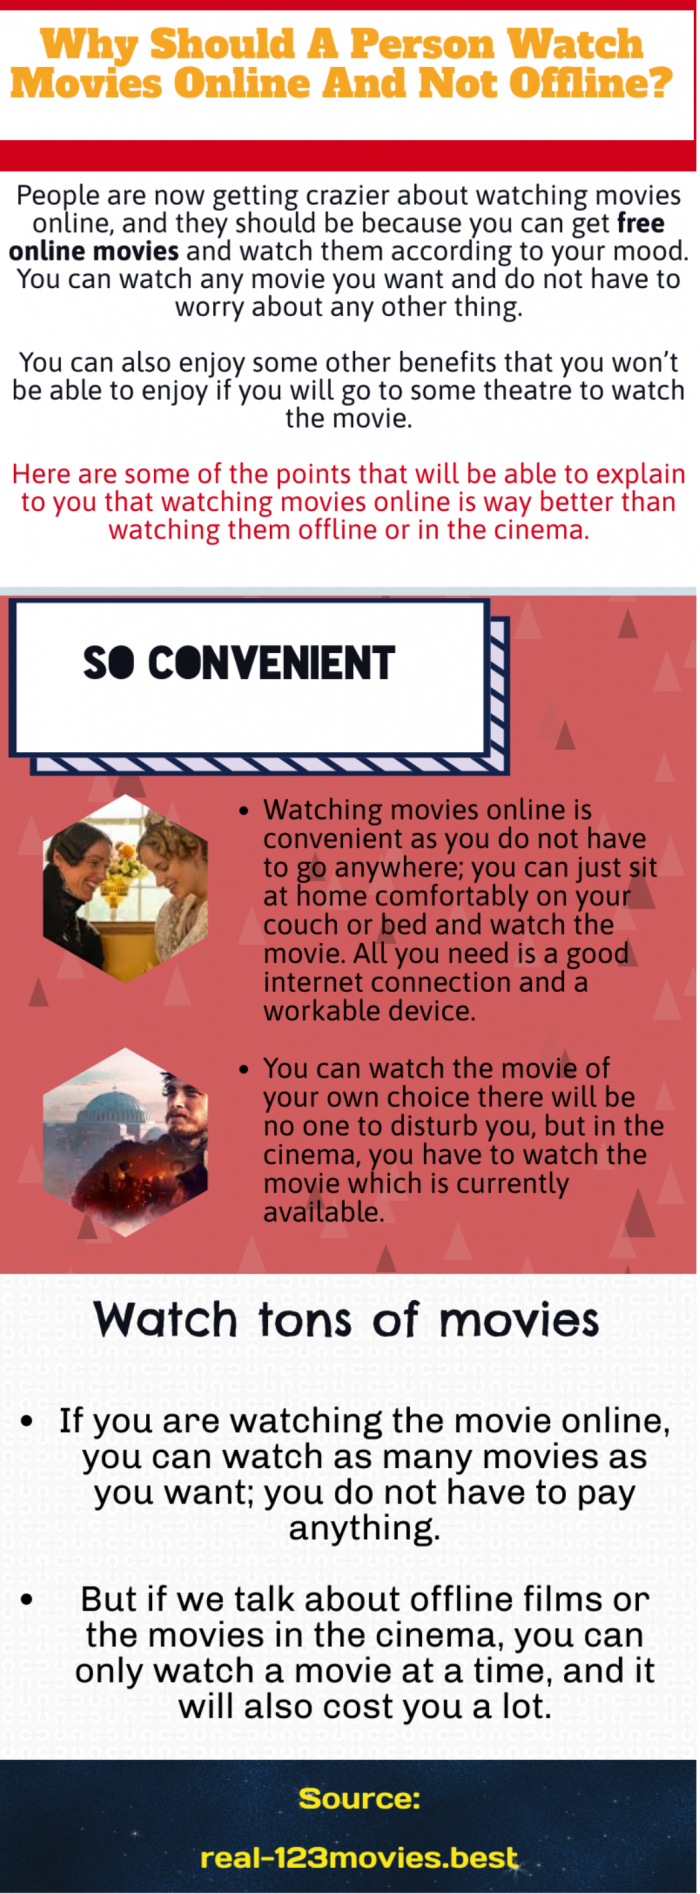 Tips In Mind before Watch The Online Movies